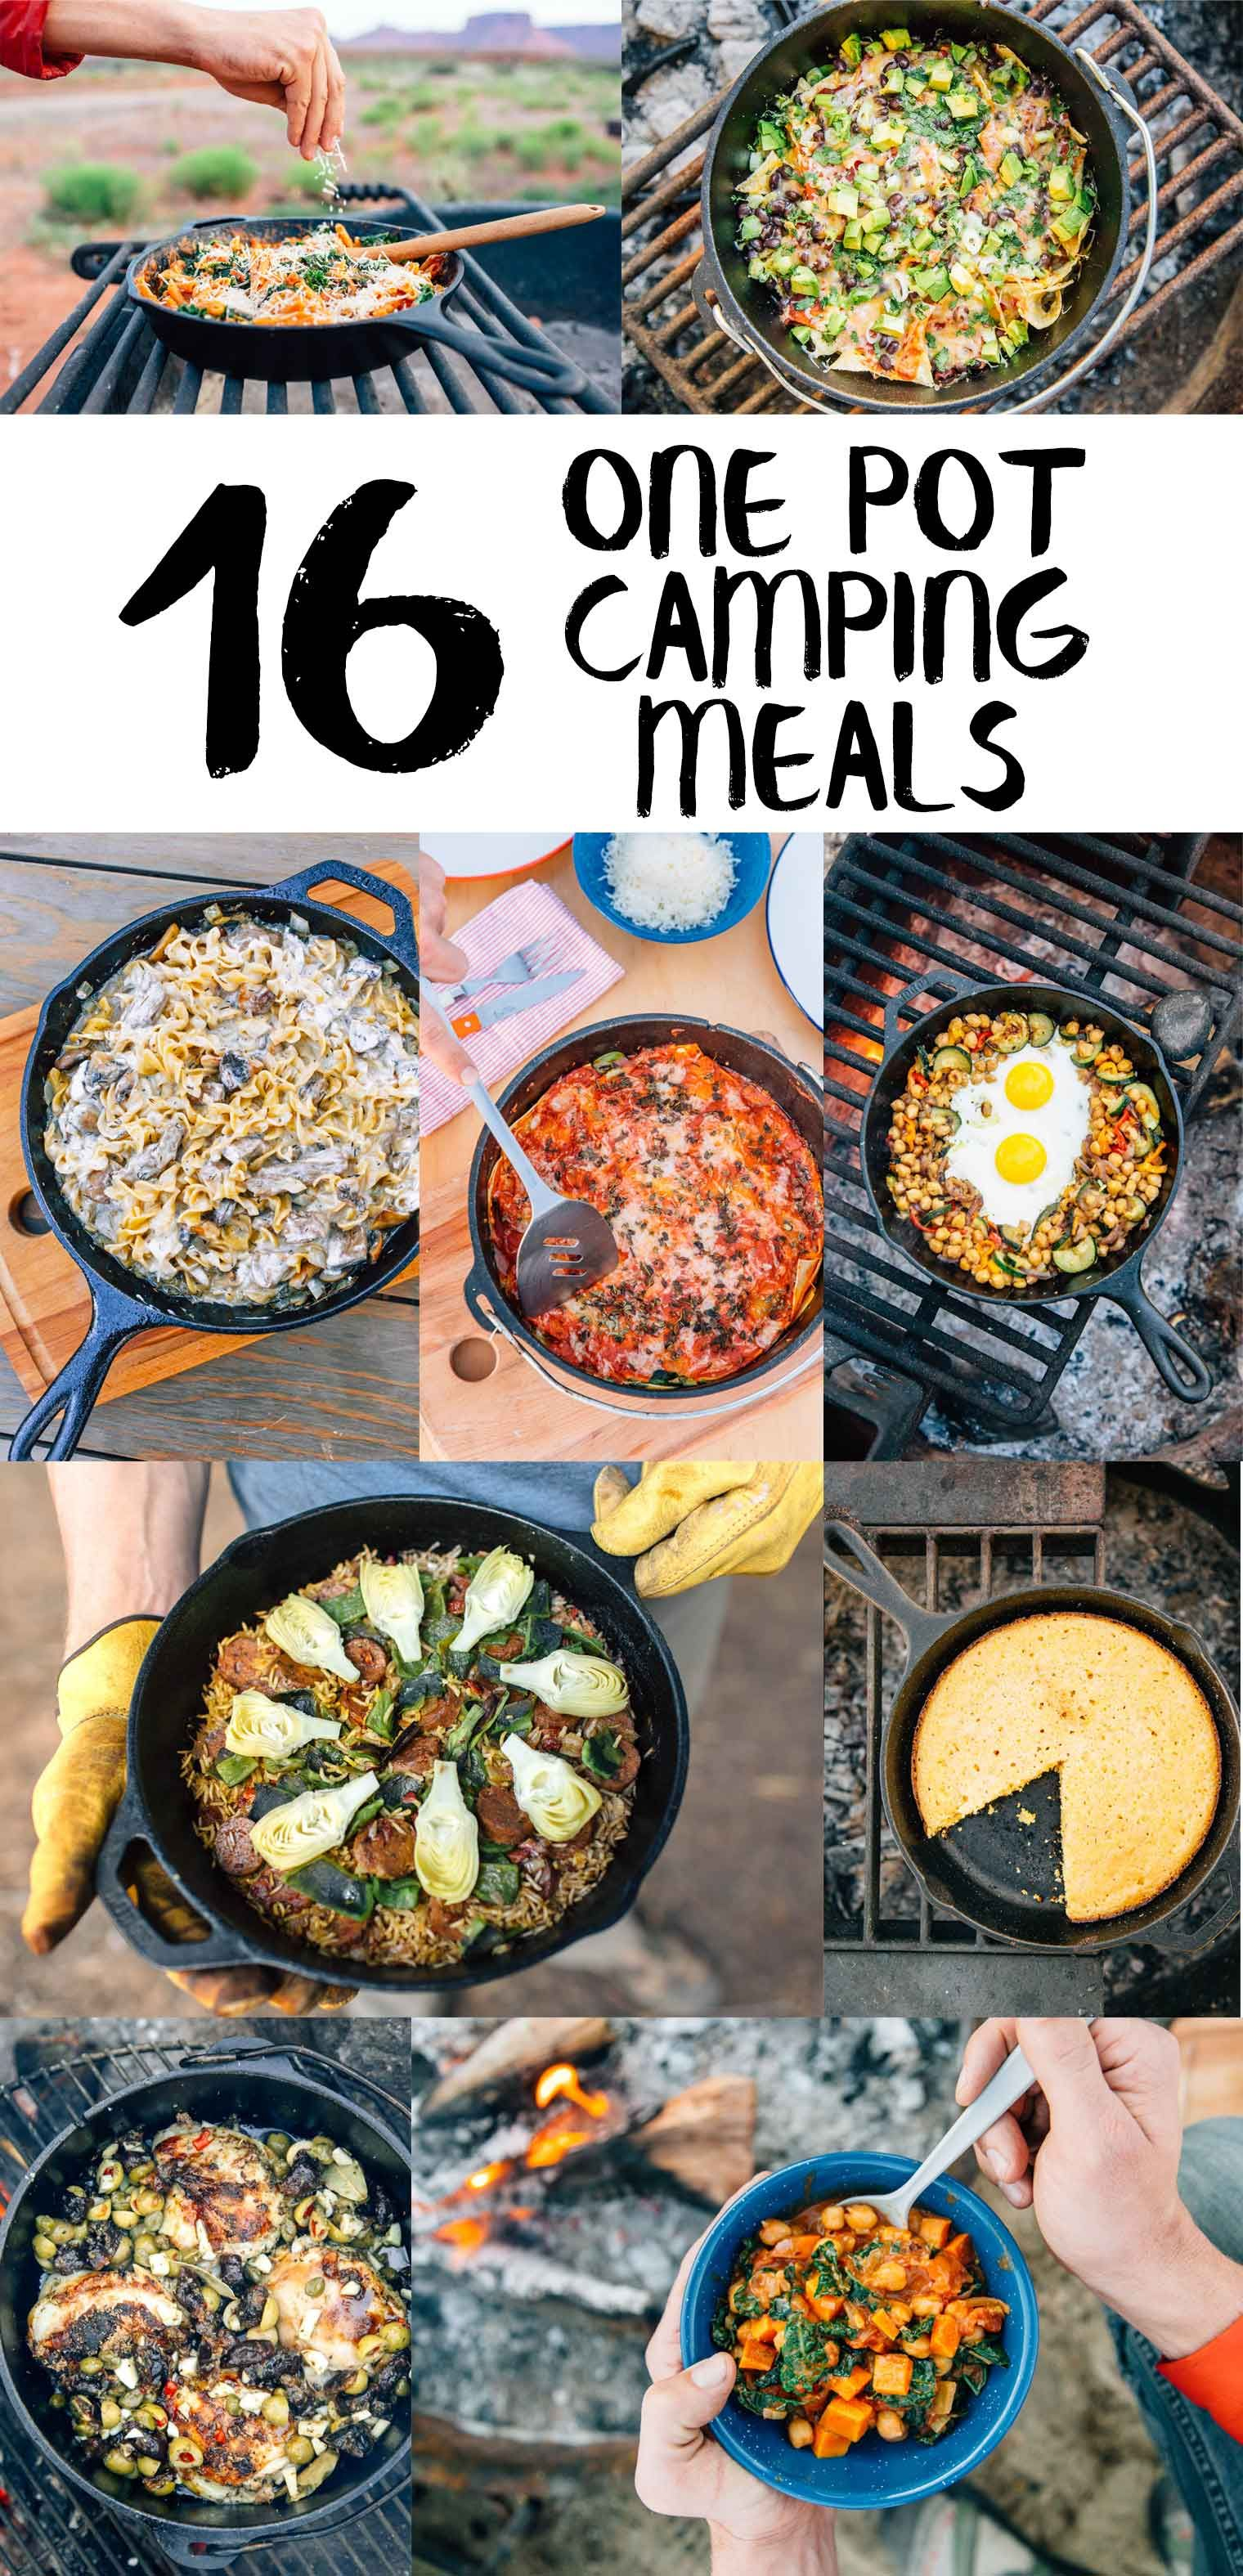 Photo of 16 One Pot Camping Meals | Fresh Off the Grid